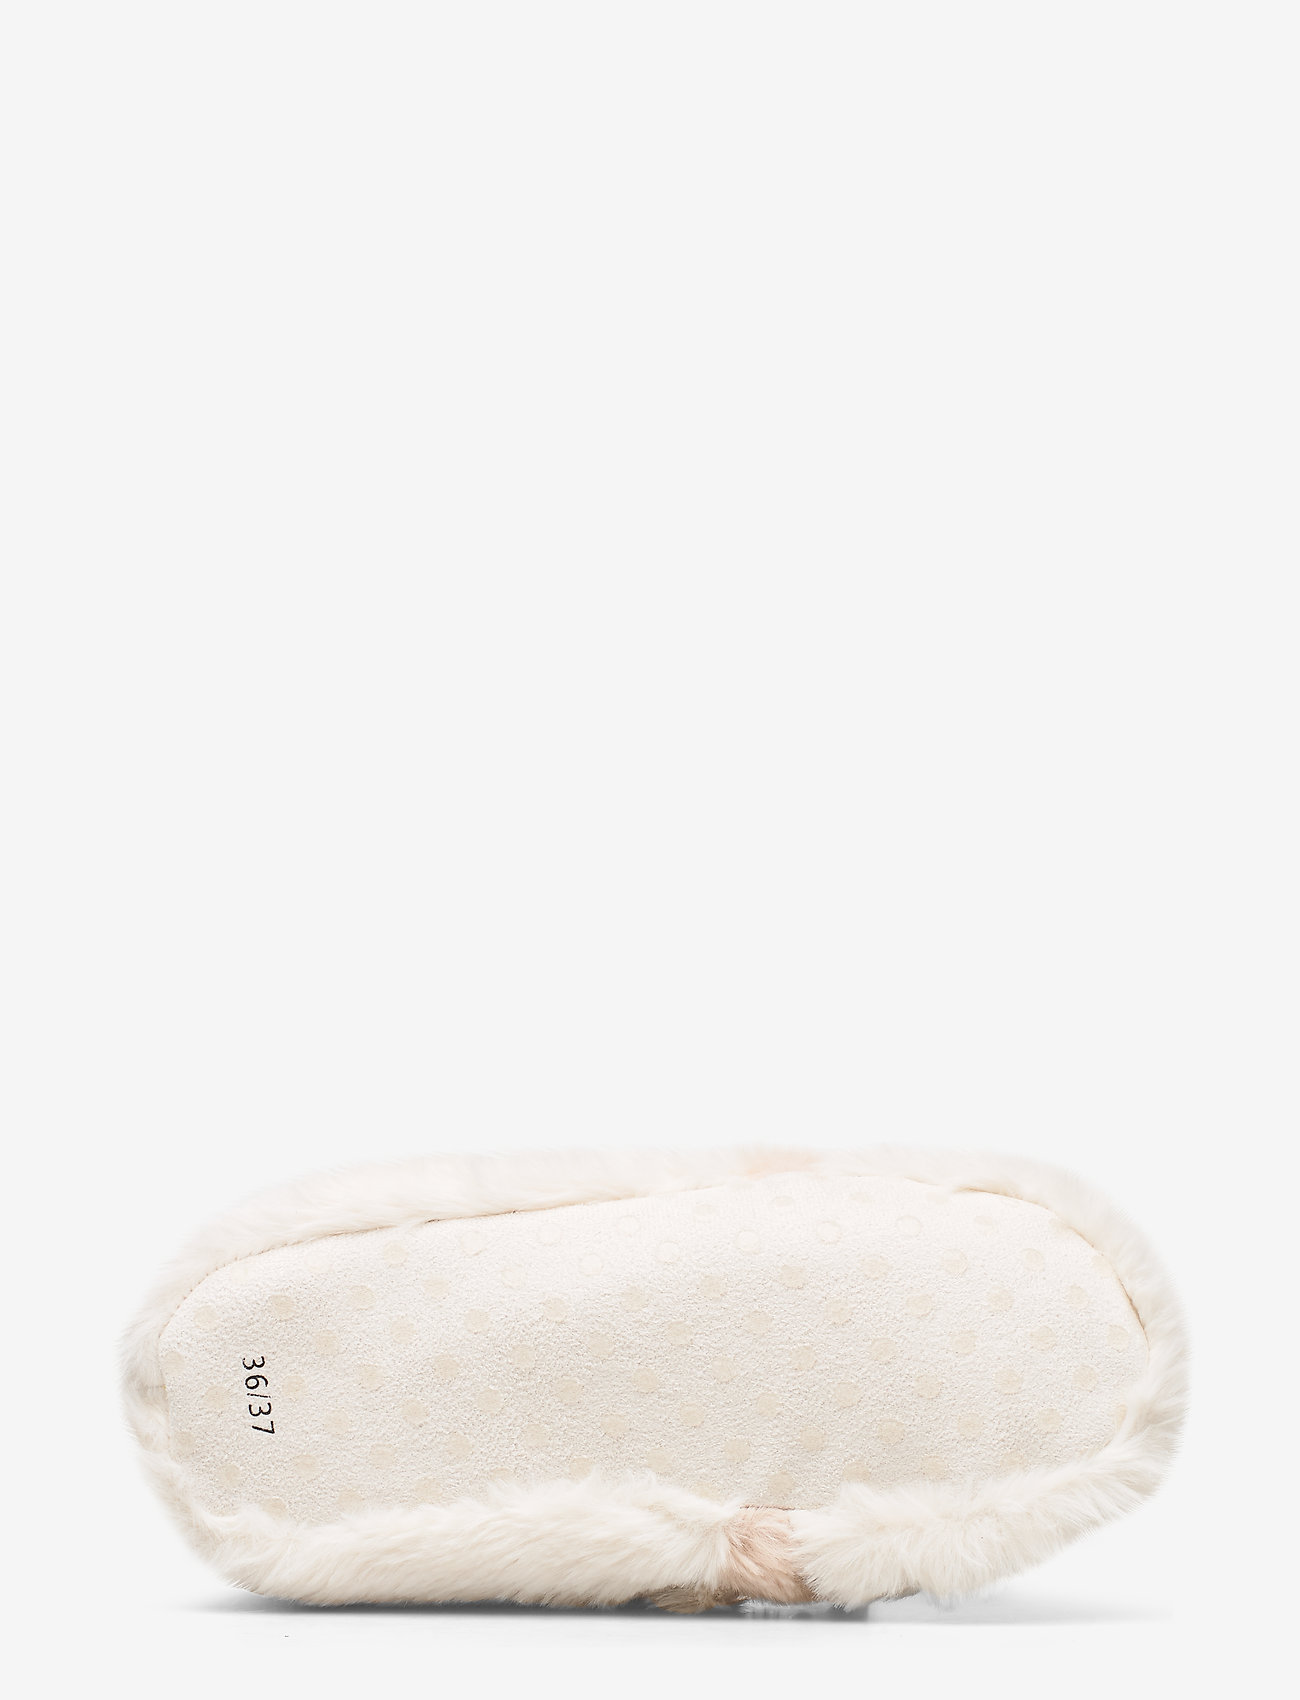 Lindex Indoor boot Furry face- Chaussons wERmcEi0 Rse2S S69SDJHA